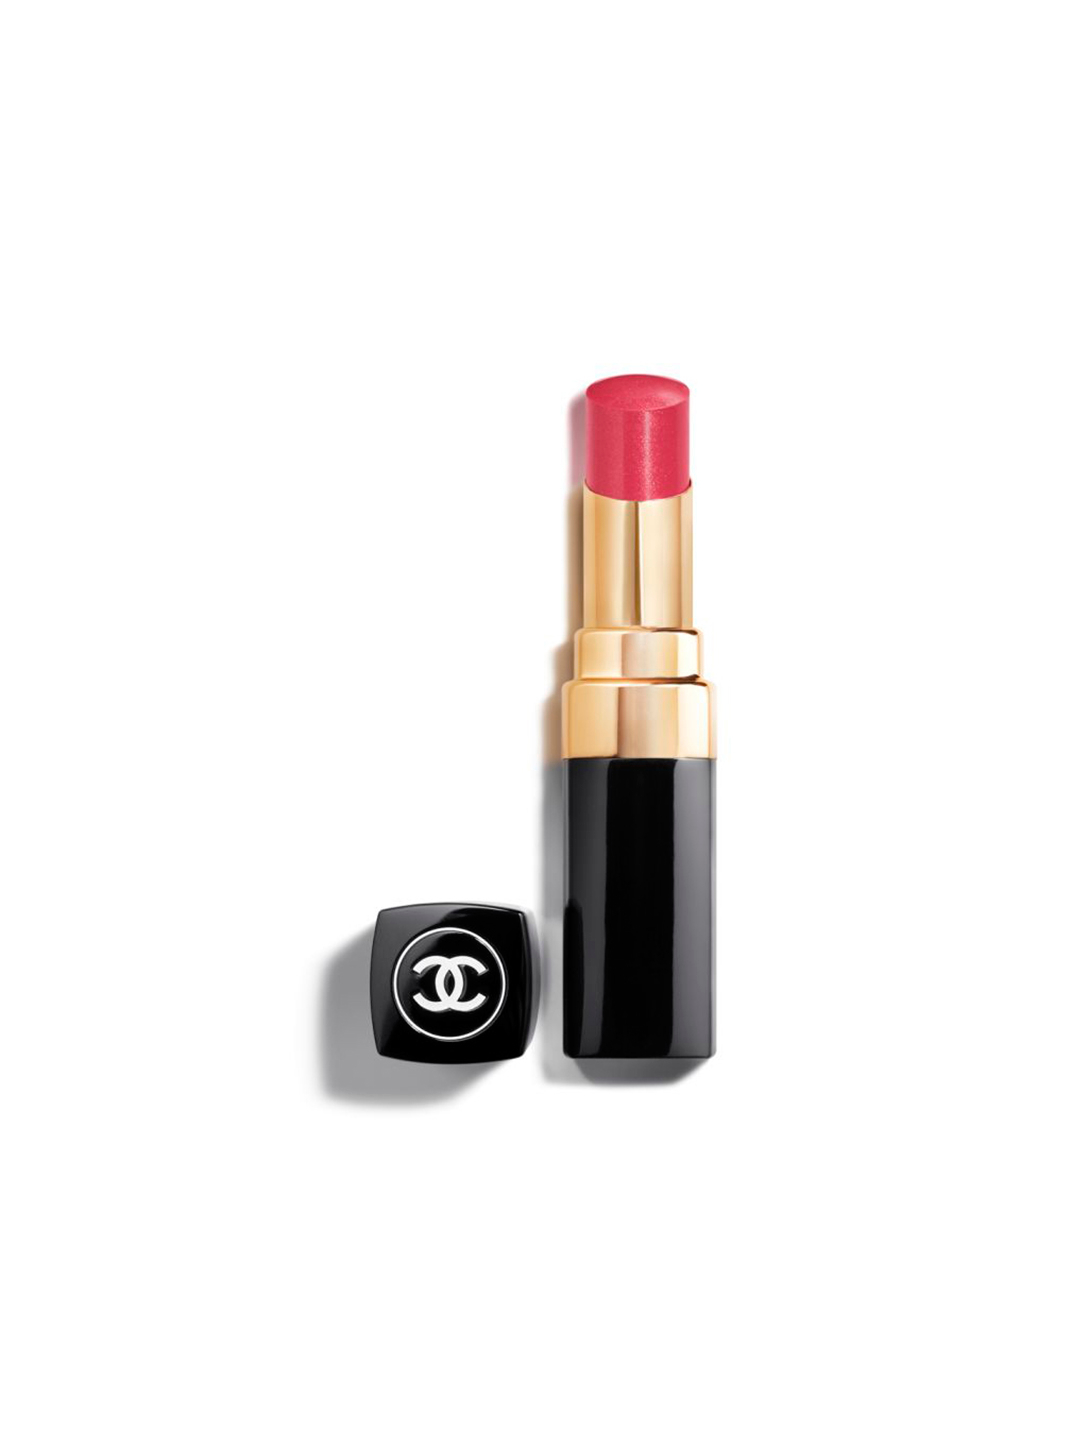 CHANEL Le rouge brillant fondant hydratant CHANEL Rouge